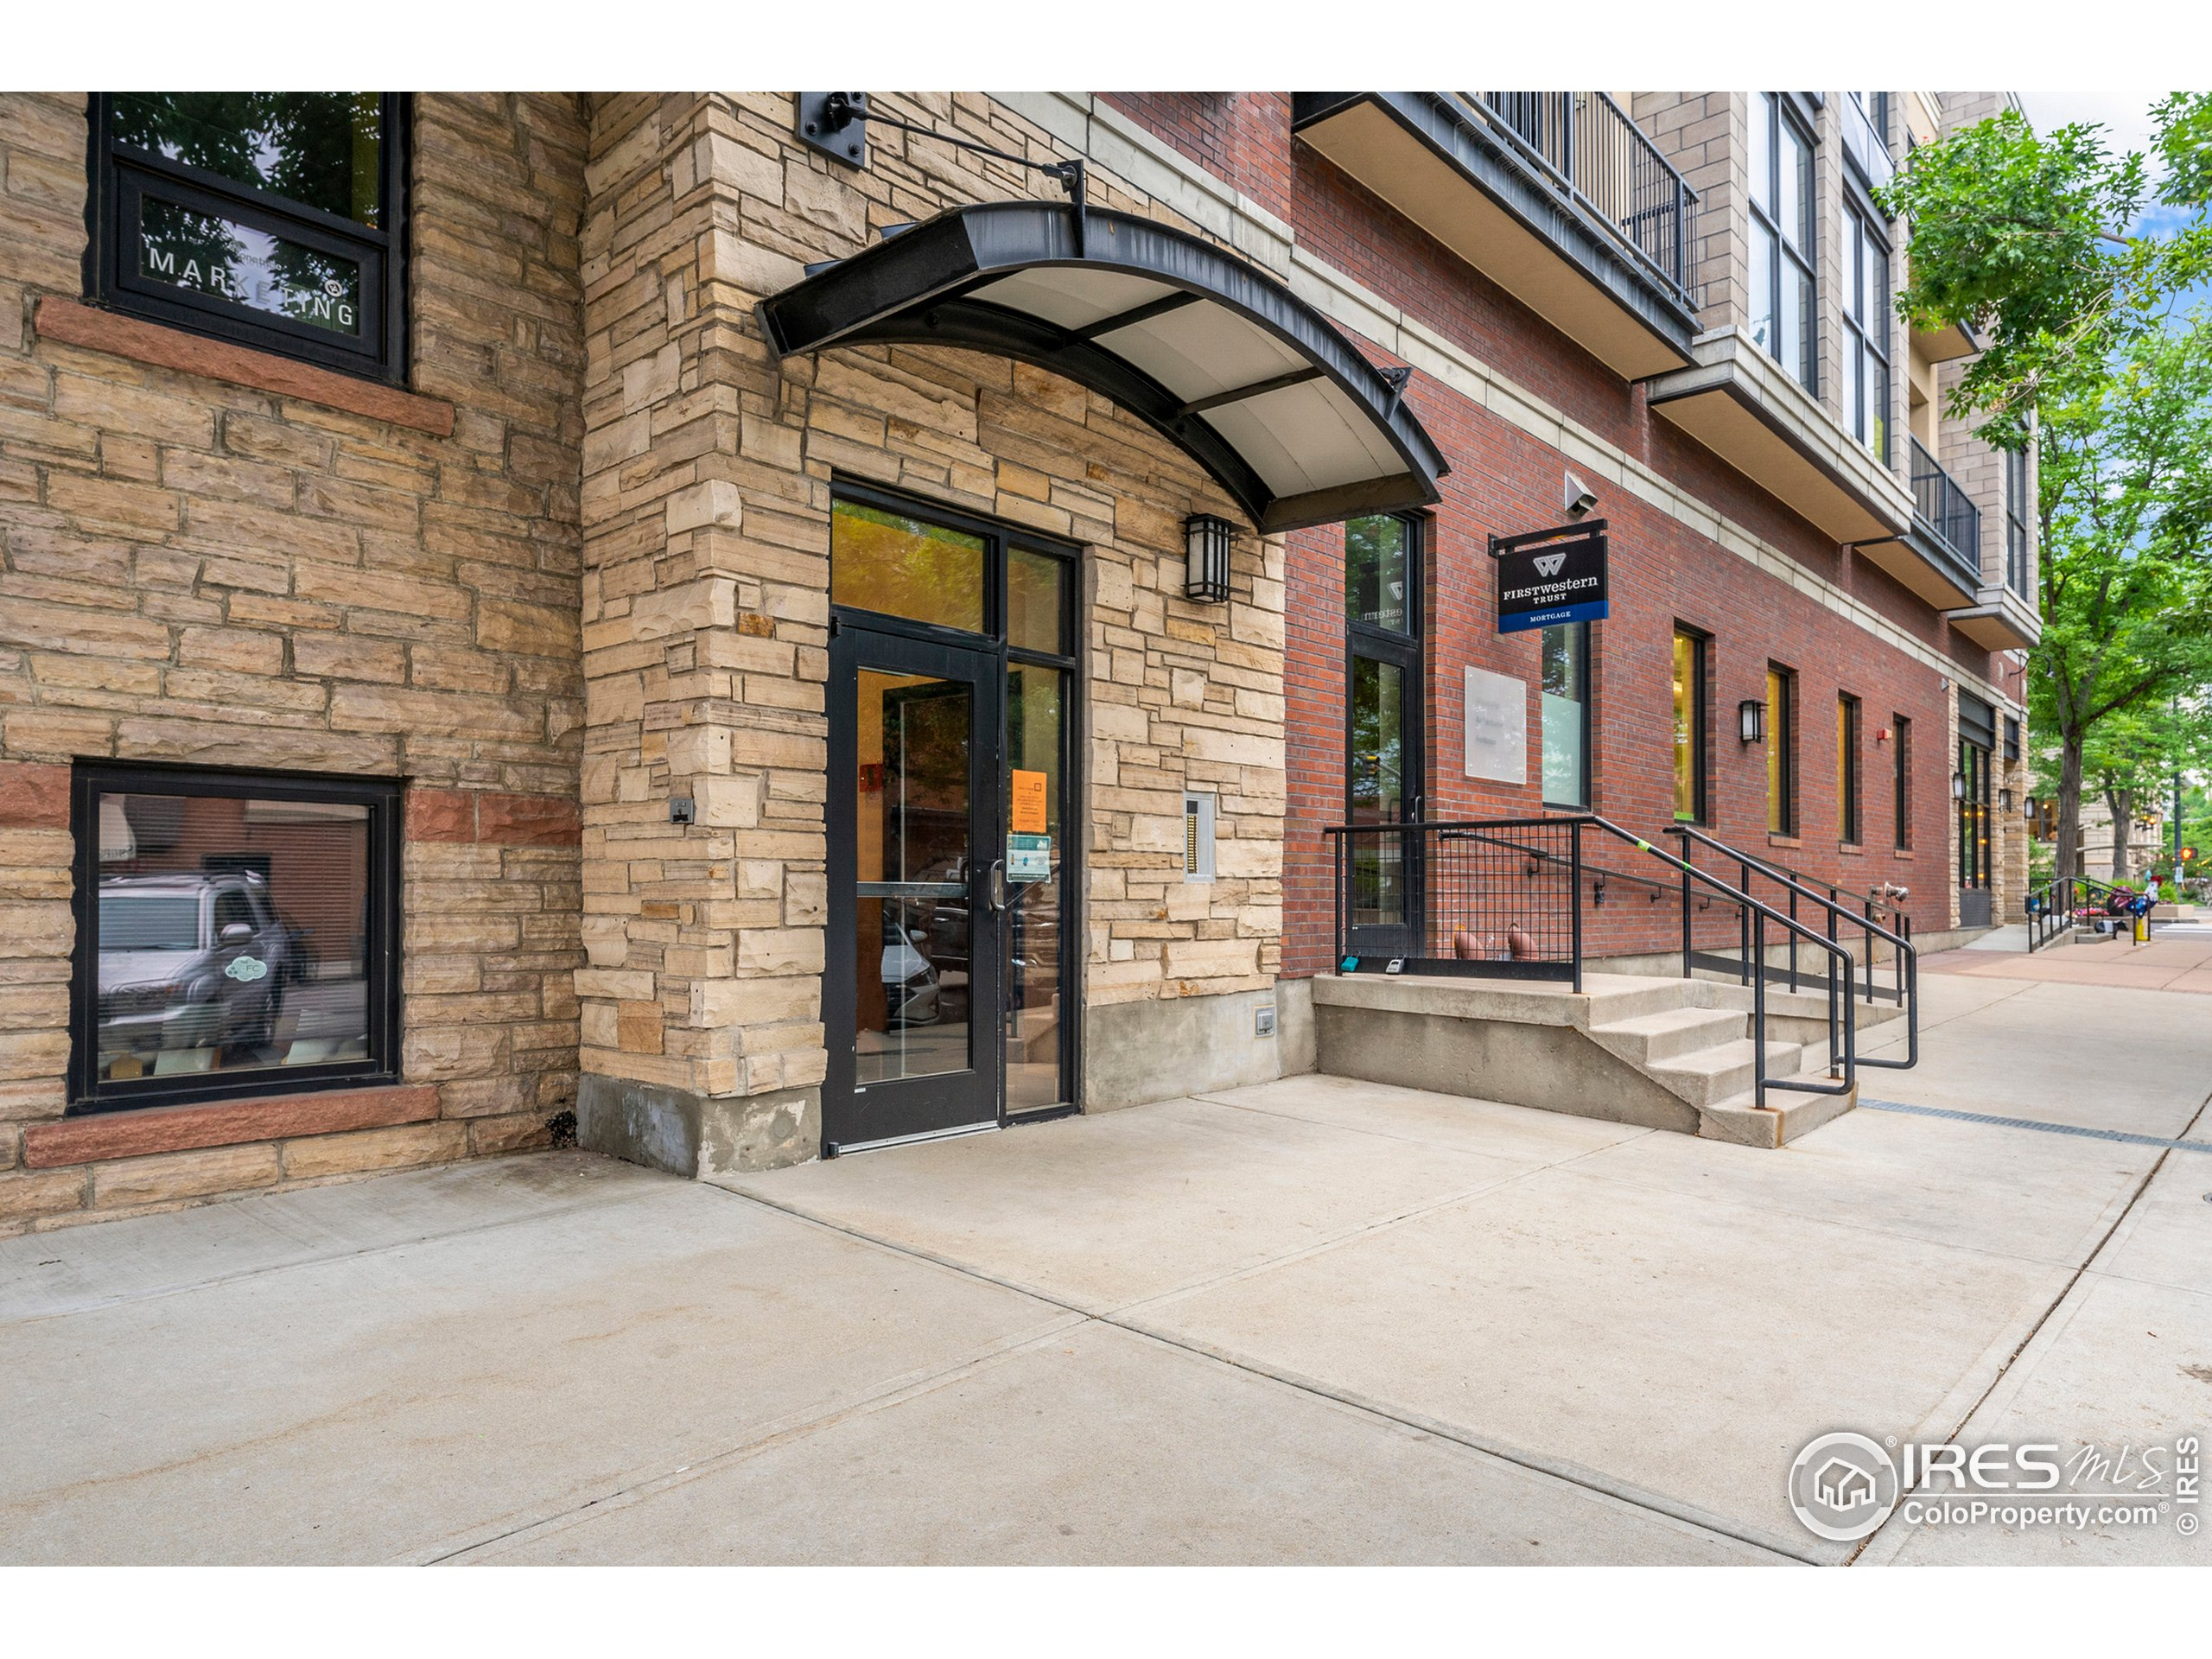 YOU CANT BEAT THIS LOCATION! Situated in the heart of Old Town Fort Collins, this modern-industrial loft is close to award-winning breweries, restaurants, local distilleries, live music and shopping. Located on the 3rd floor of a secured building with an elevator, this condo features stunning floor-to-ceiling windows and patio directly overlooking both College Ave and Oak Street in Old Town! Industrial lighting, exposed ductwork, open floor plan, tall ceilings, W/D and an updated kitchen with bar seating for four, pendant lighting. All appliances are included!